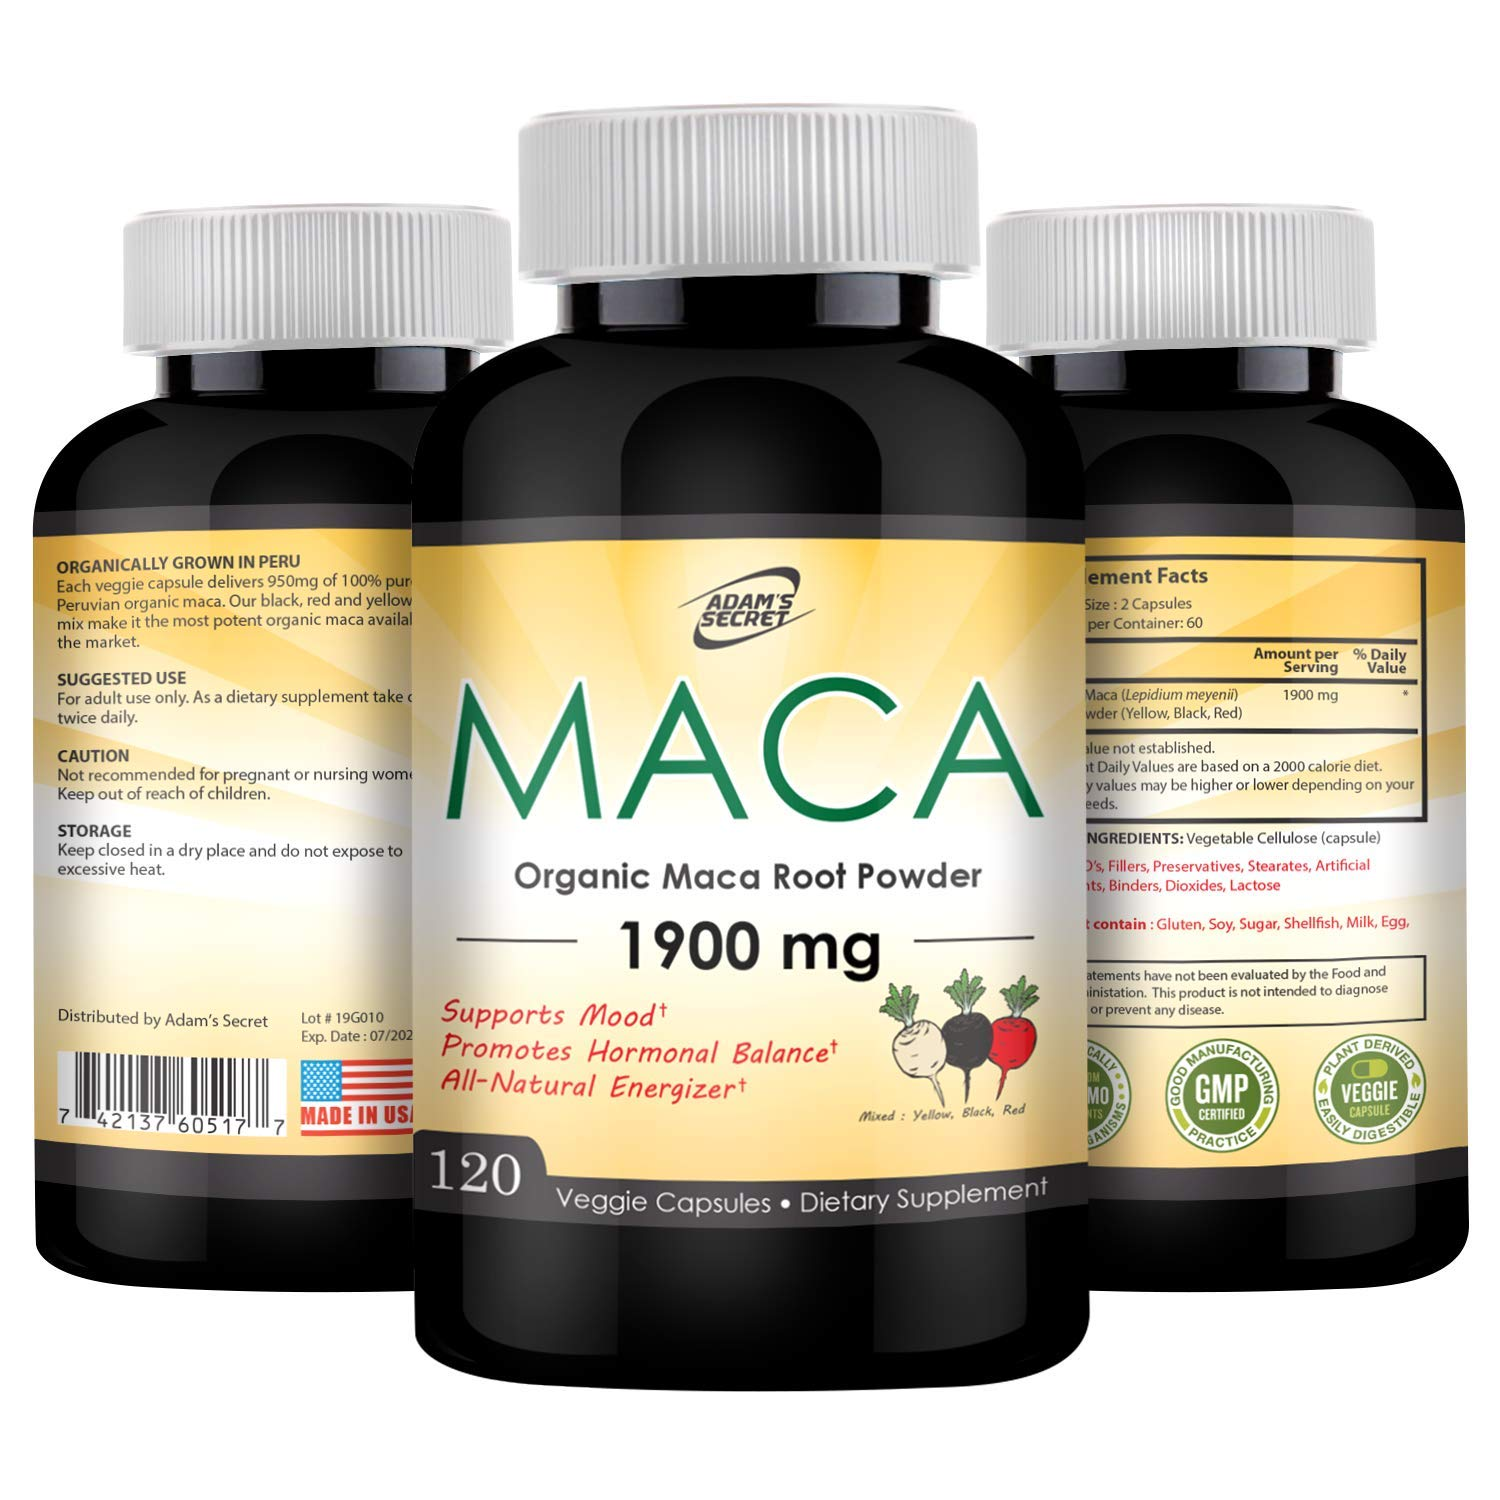 Organic Maca Root Black, Red, Yellow 1900mg per Serving | Superfood Maca Root is an Excellent Supplement for Men and Women, Natural Energizer, Improves Vigor & Focus | 100% Pure Non-GMO | 120 Capsules